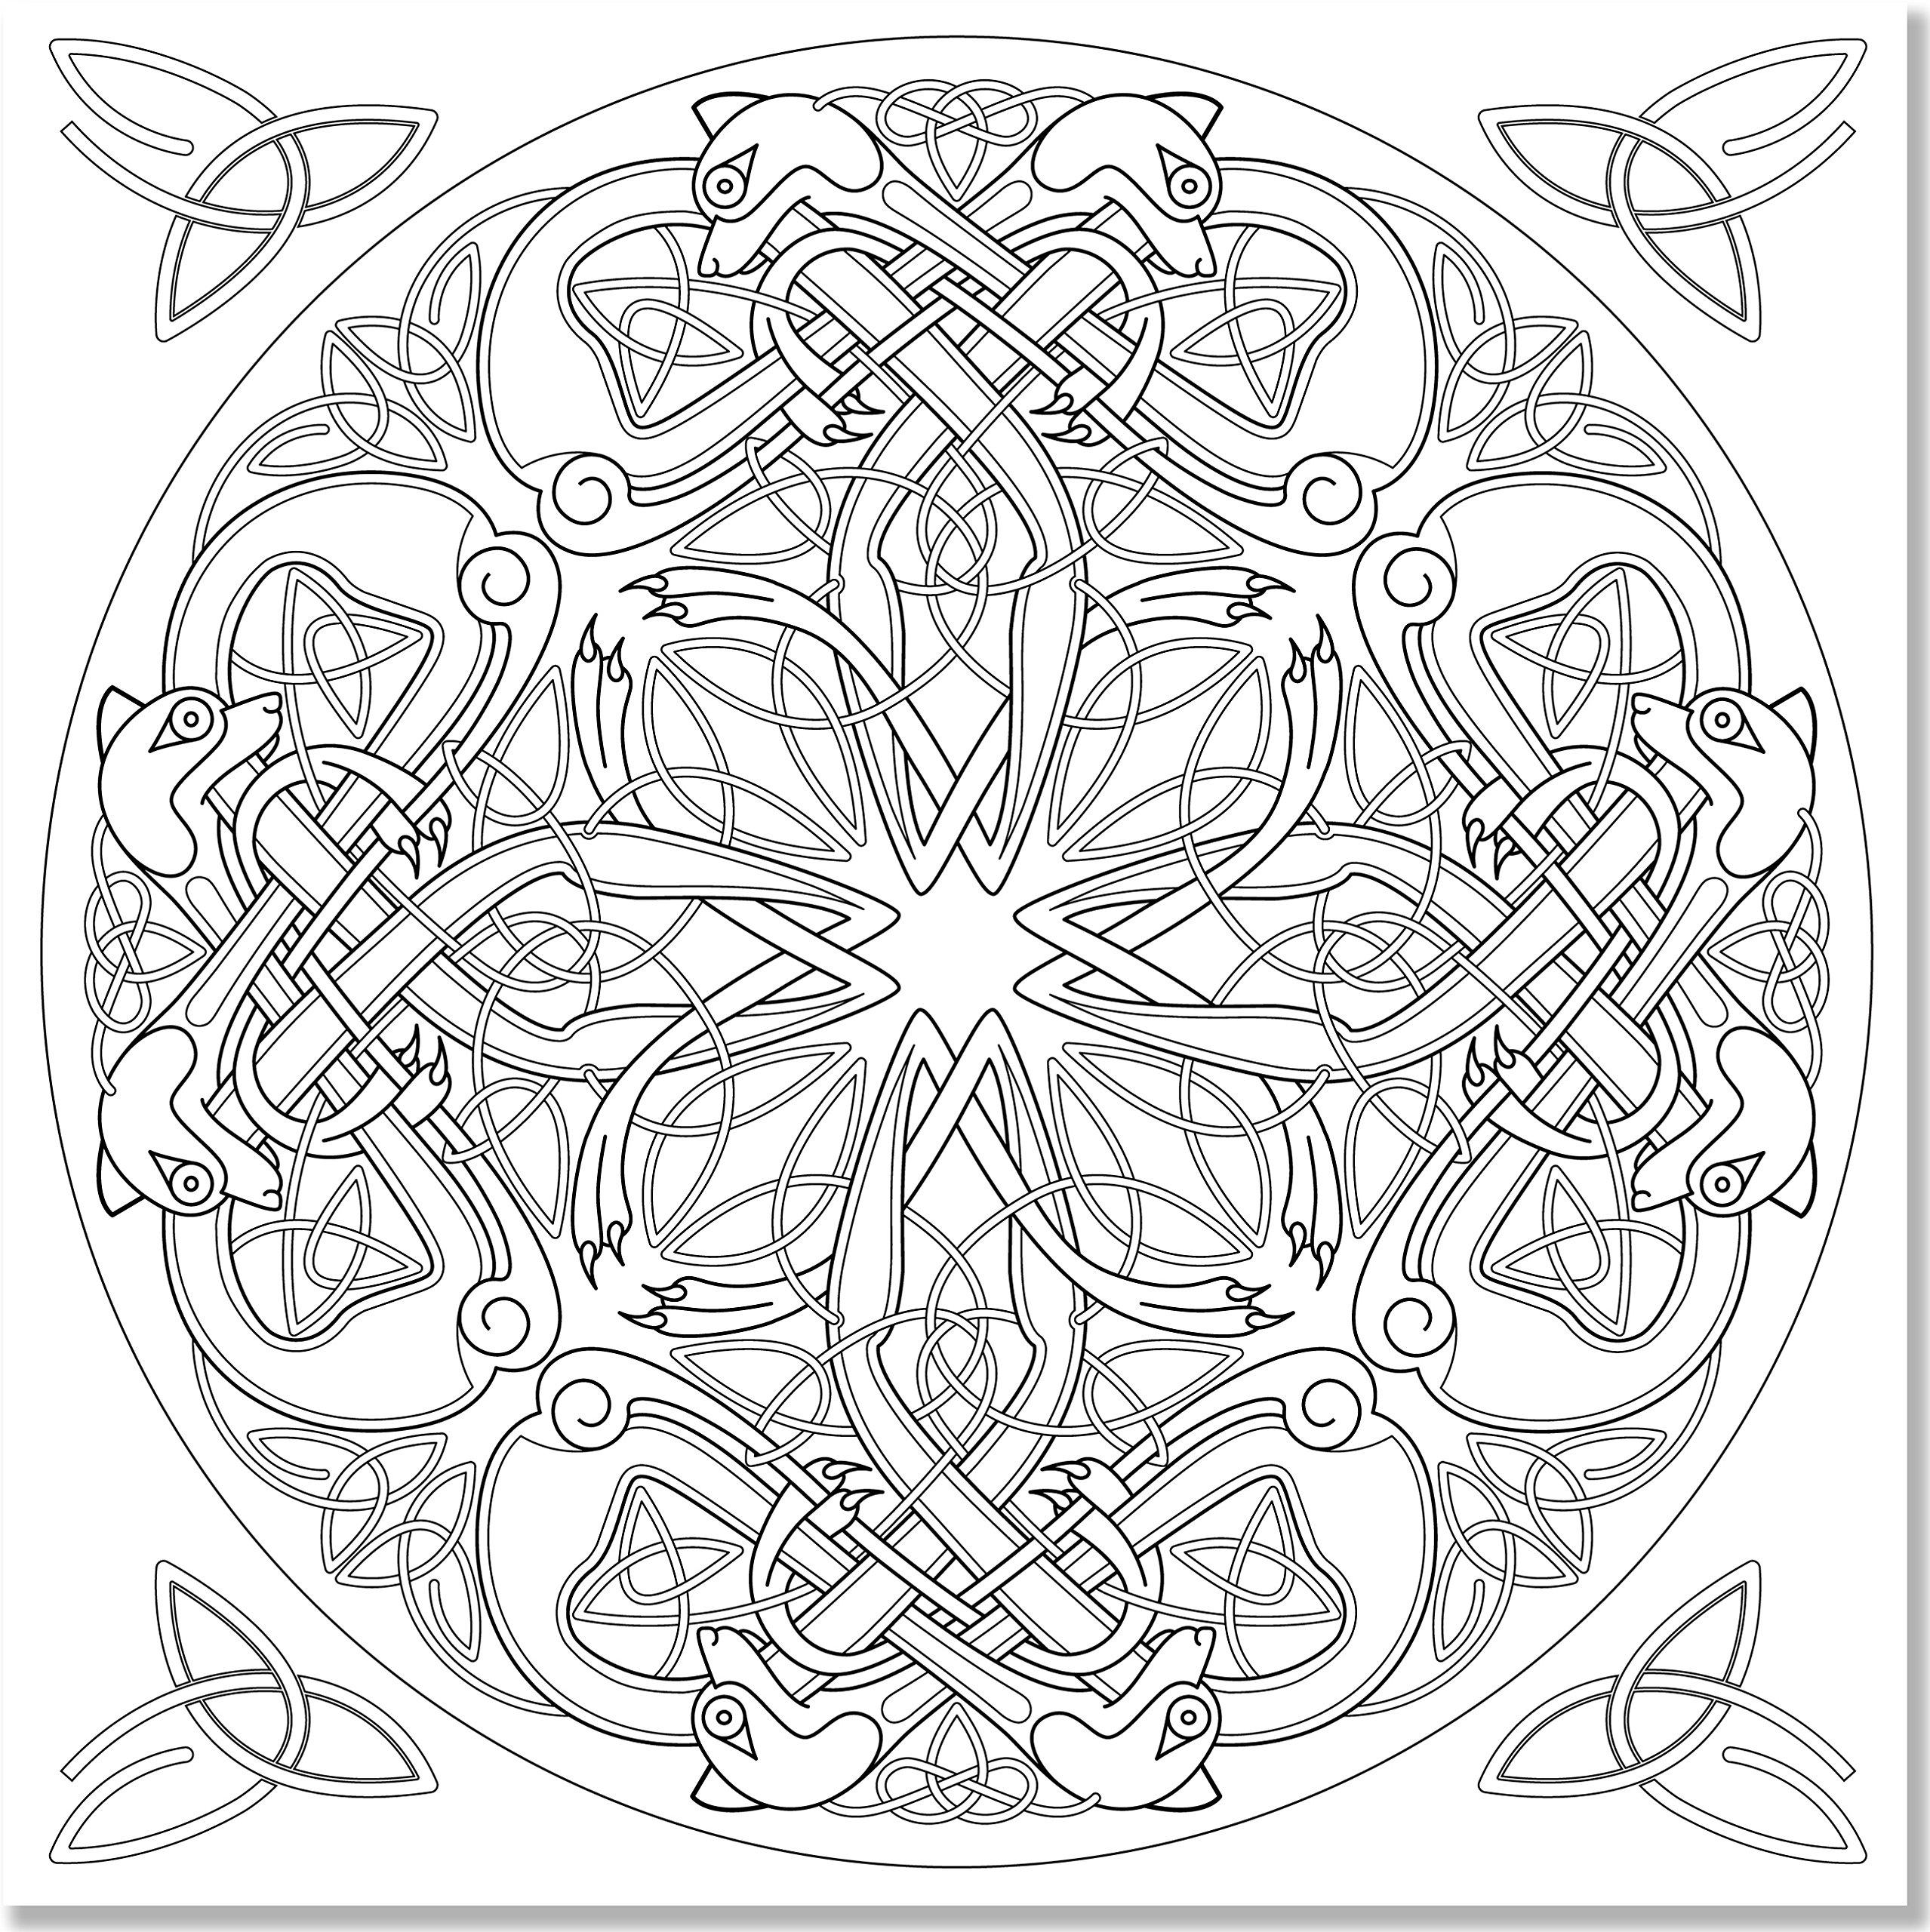 amazoncom celtic designs adult coloring book 31 stress relieving designs studio 9781441317438 peter pauper press books - Celtic Coloring Pages